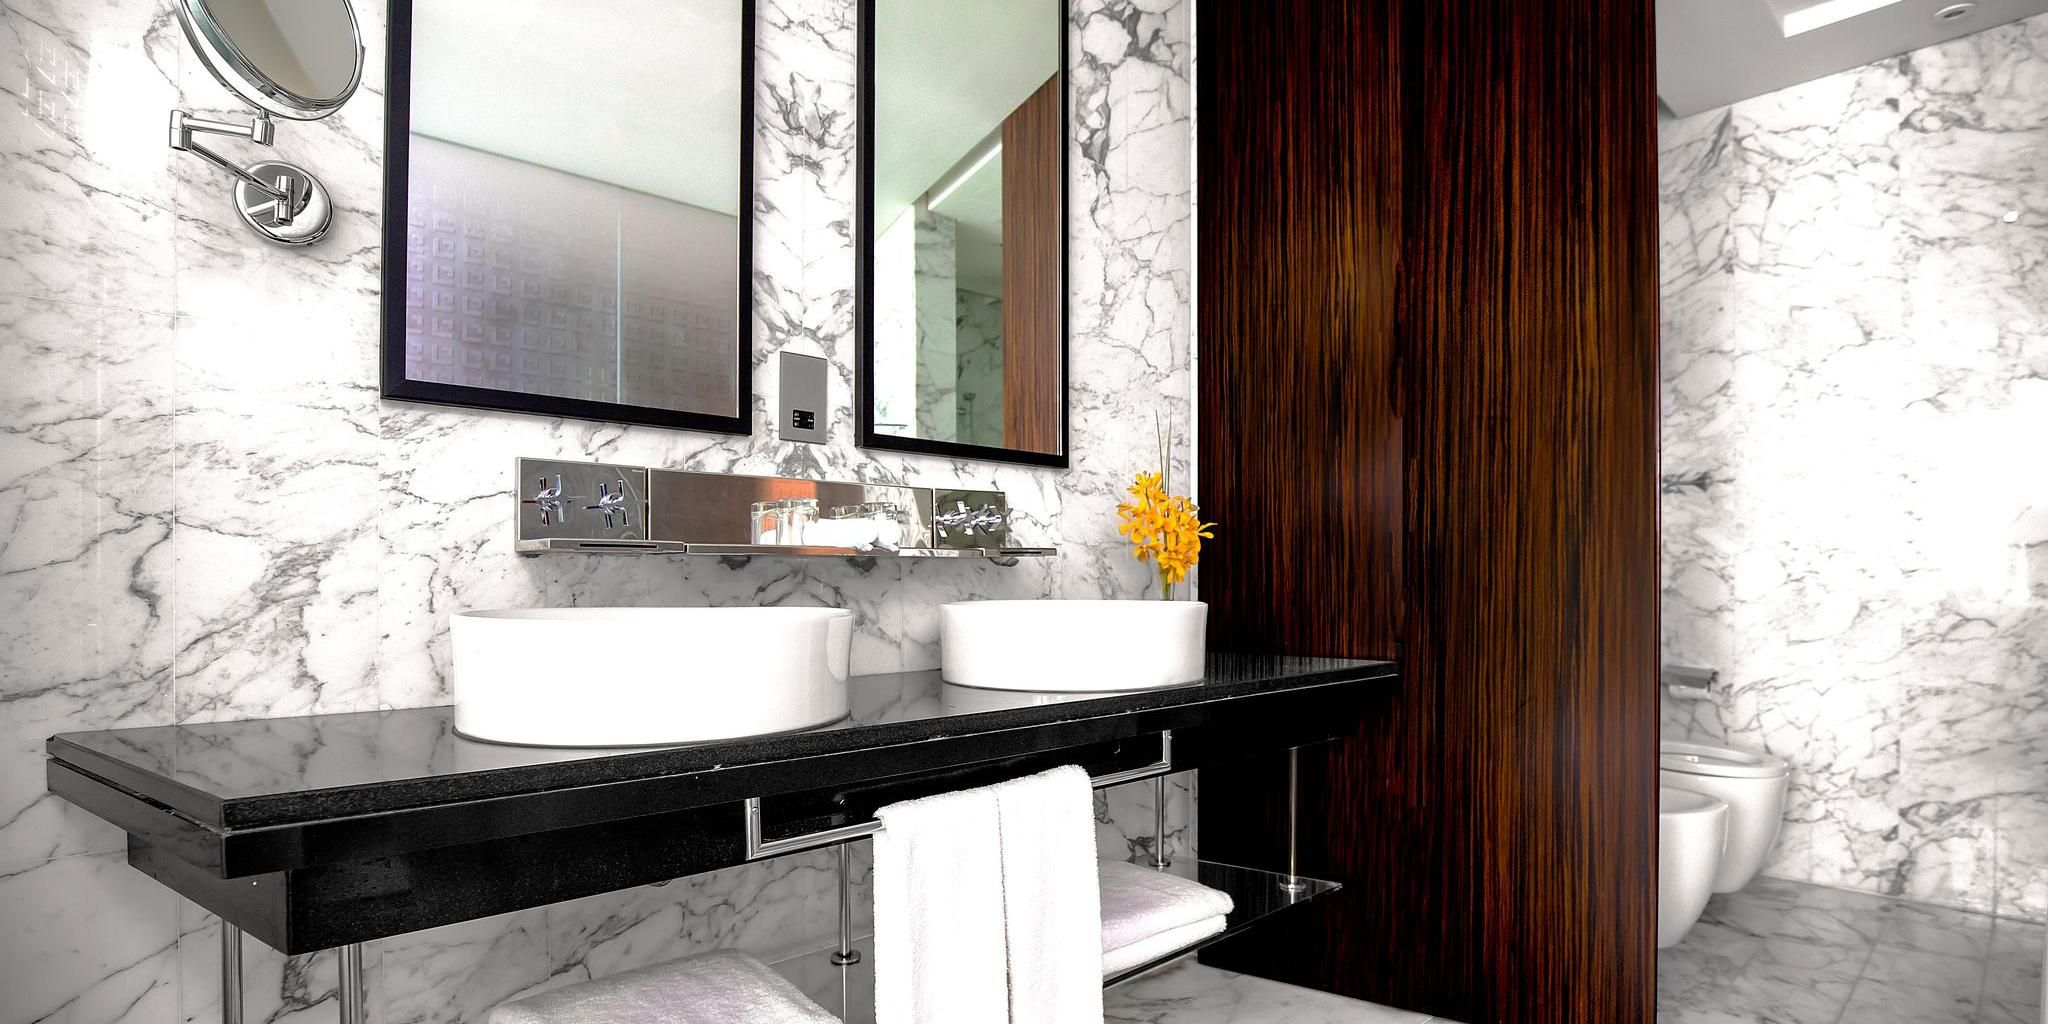 Double vanity sinks in our spacious bathroom of the Deluxe room